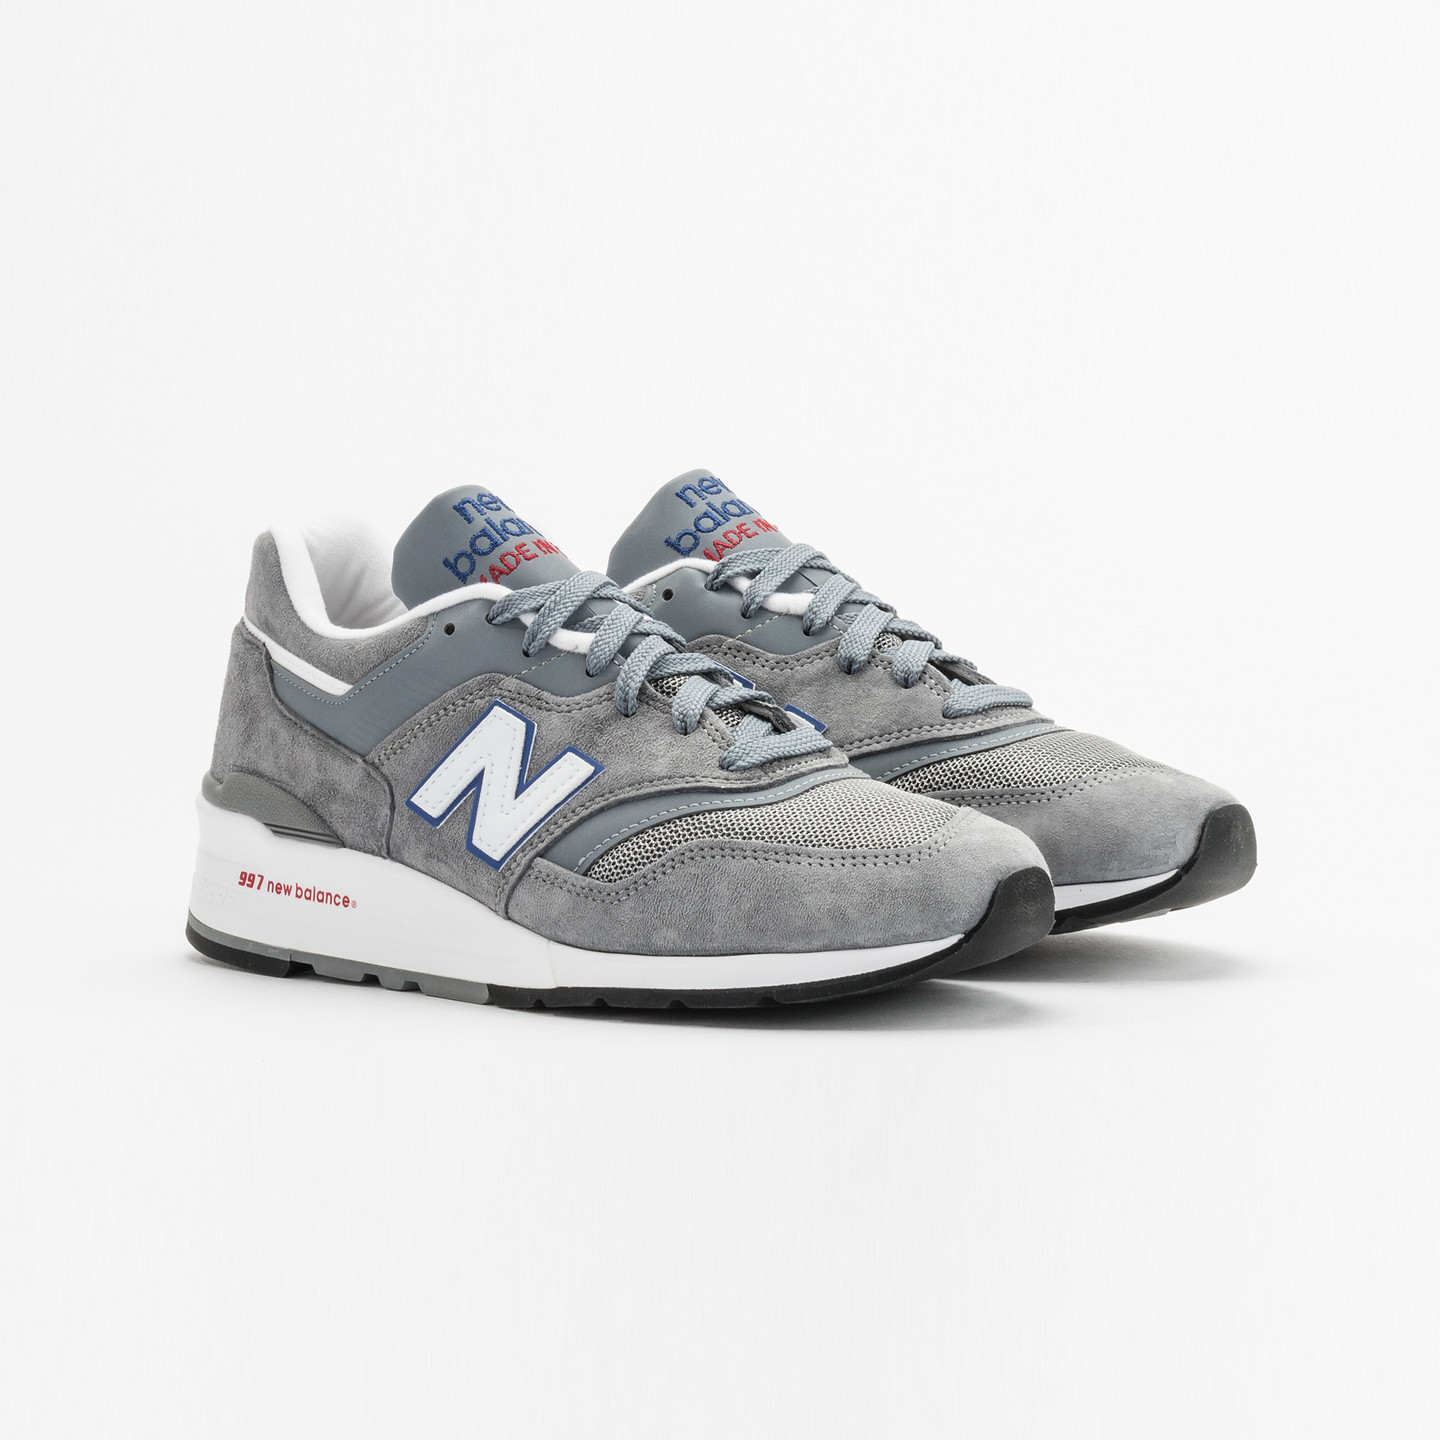 New Balance M997 Made in USA Grey / Blue / Red M997CNR-42.5